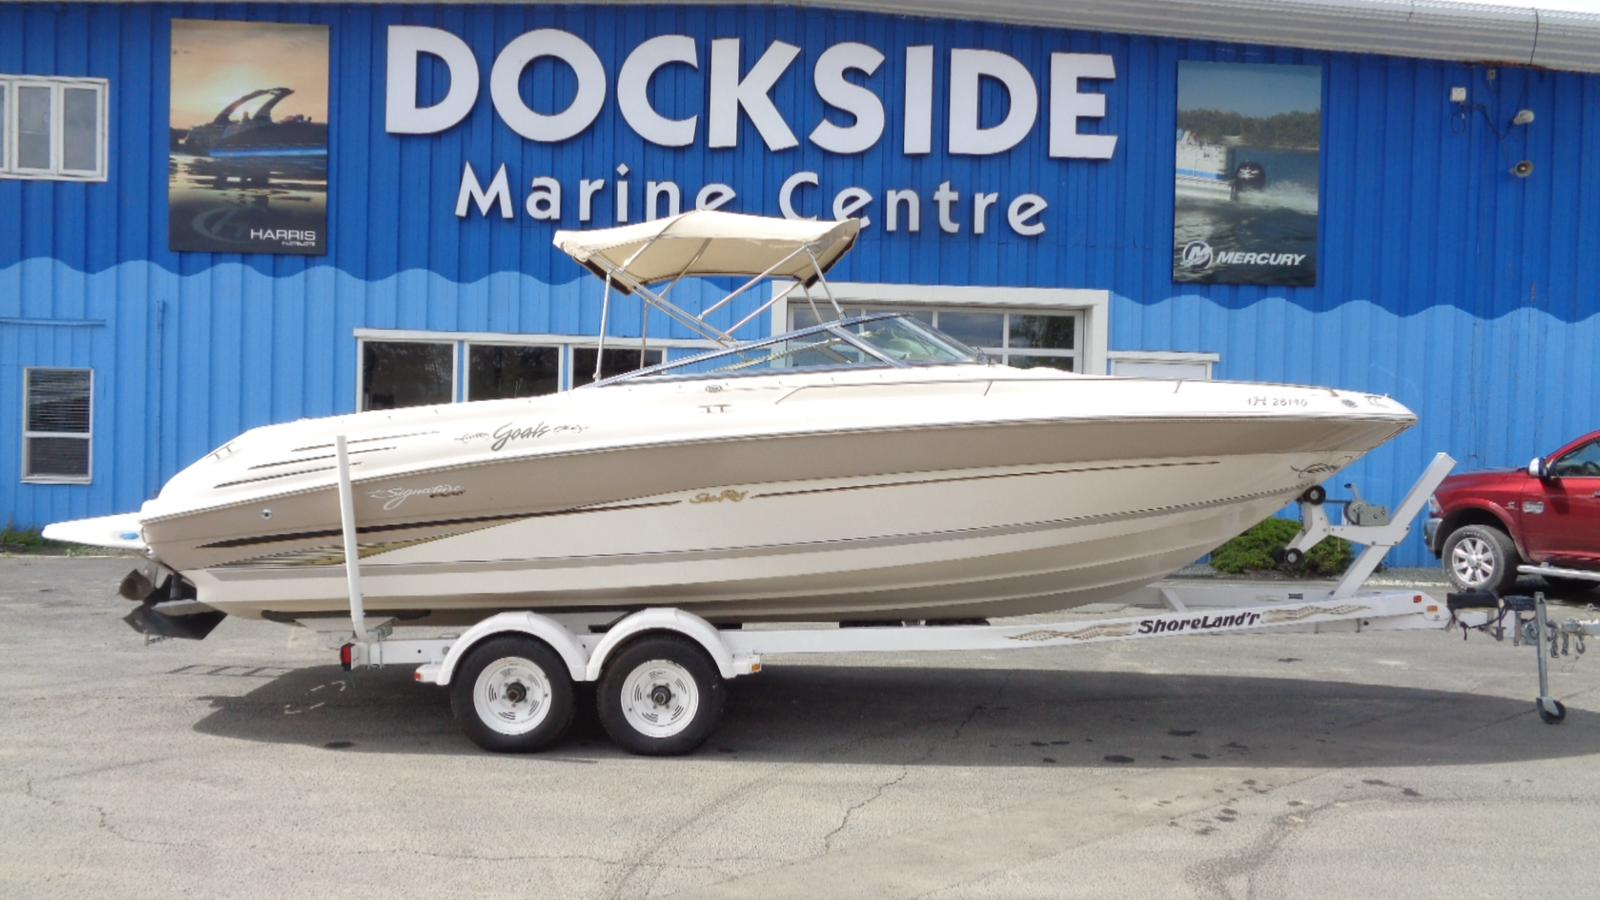 For Sale: 1999 Sea Ray 260 Signature 26ft<br/>Dockside Marine Centre, LTD.